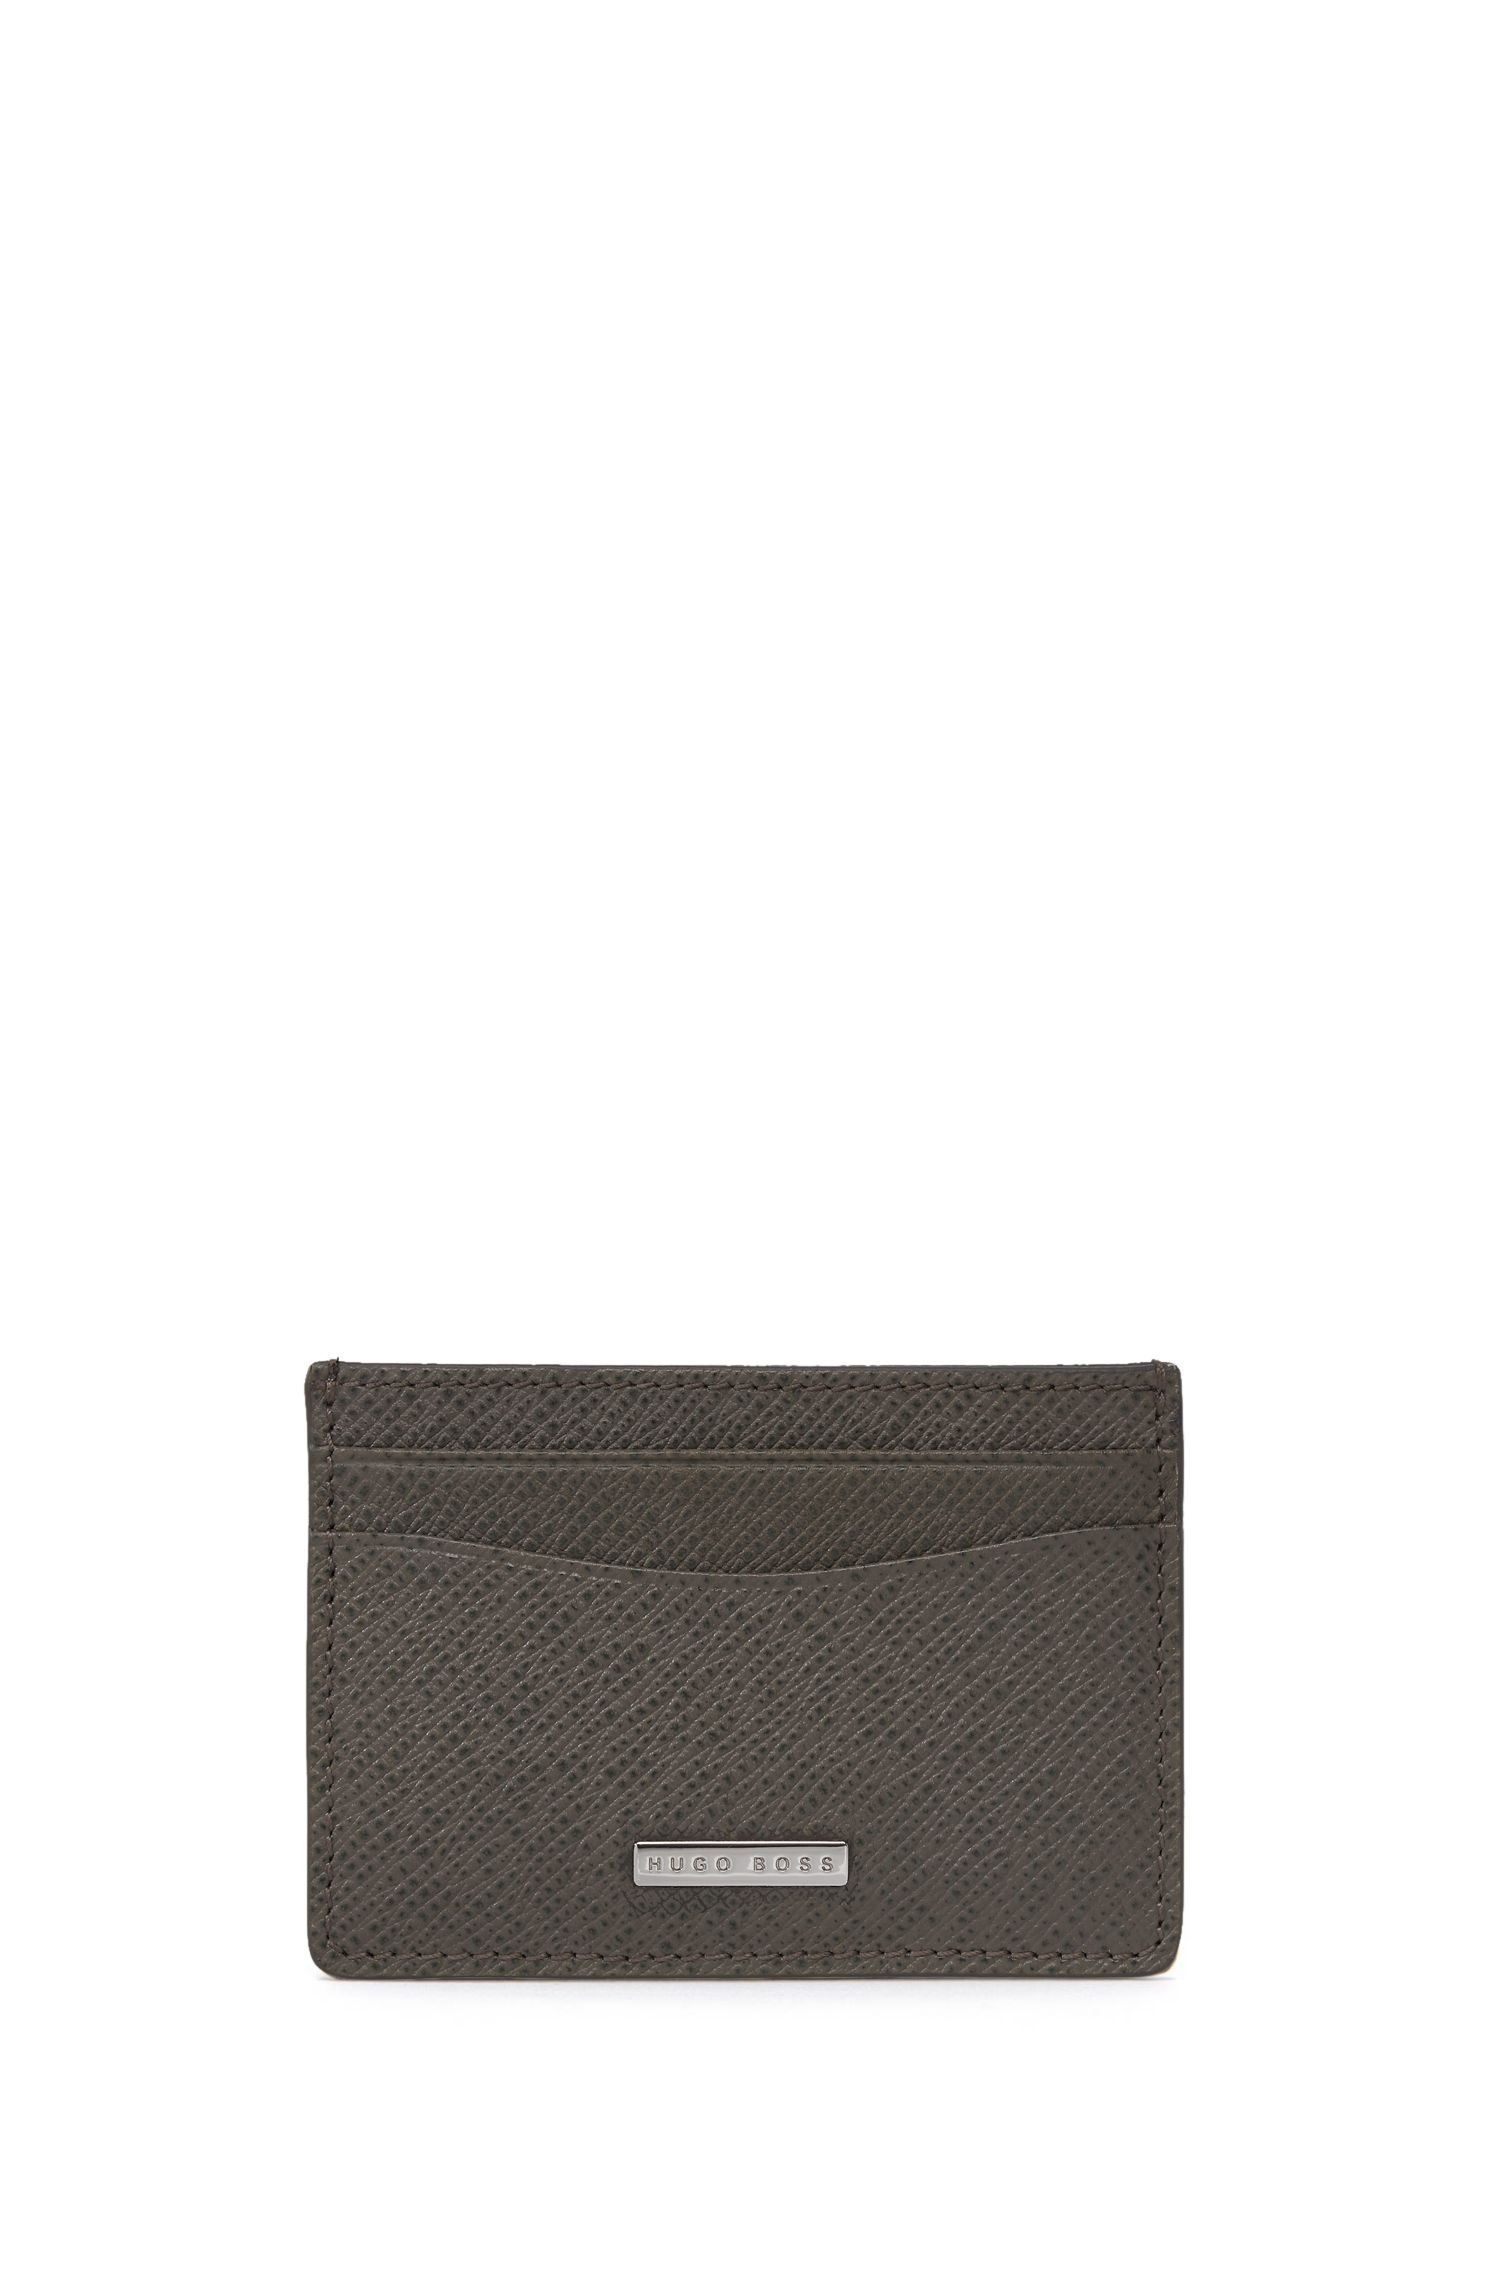 Calfskin Card Case | Signature S Card